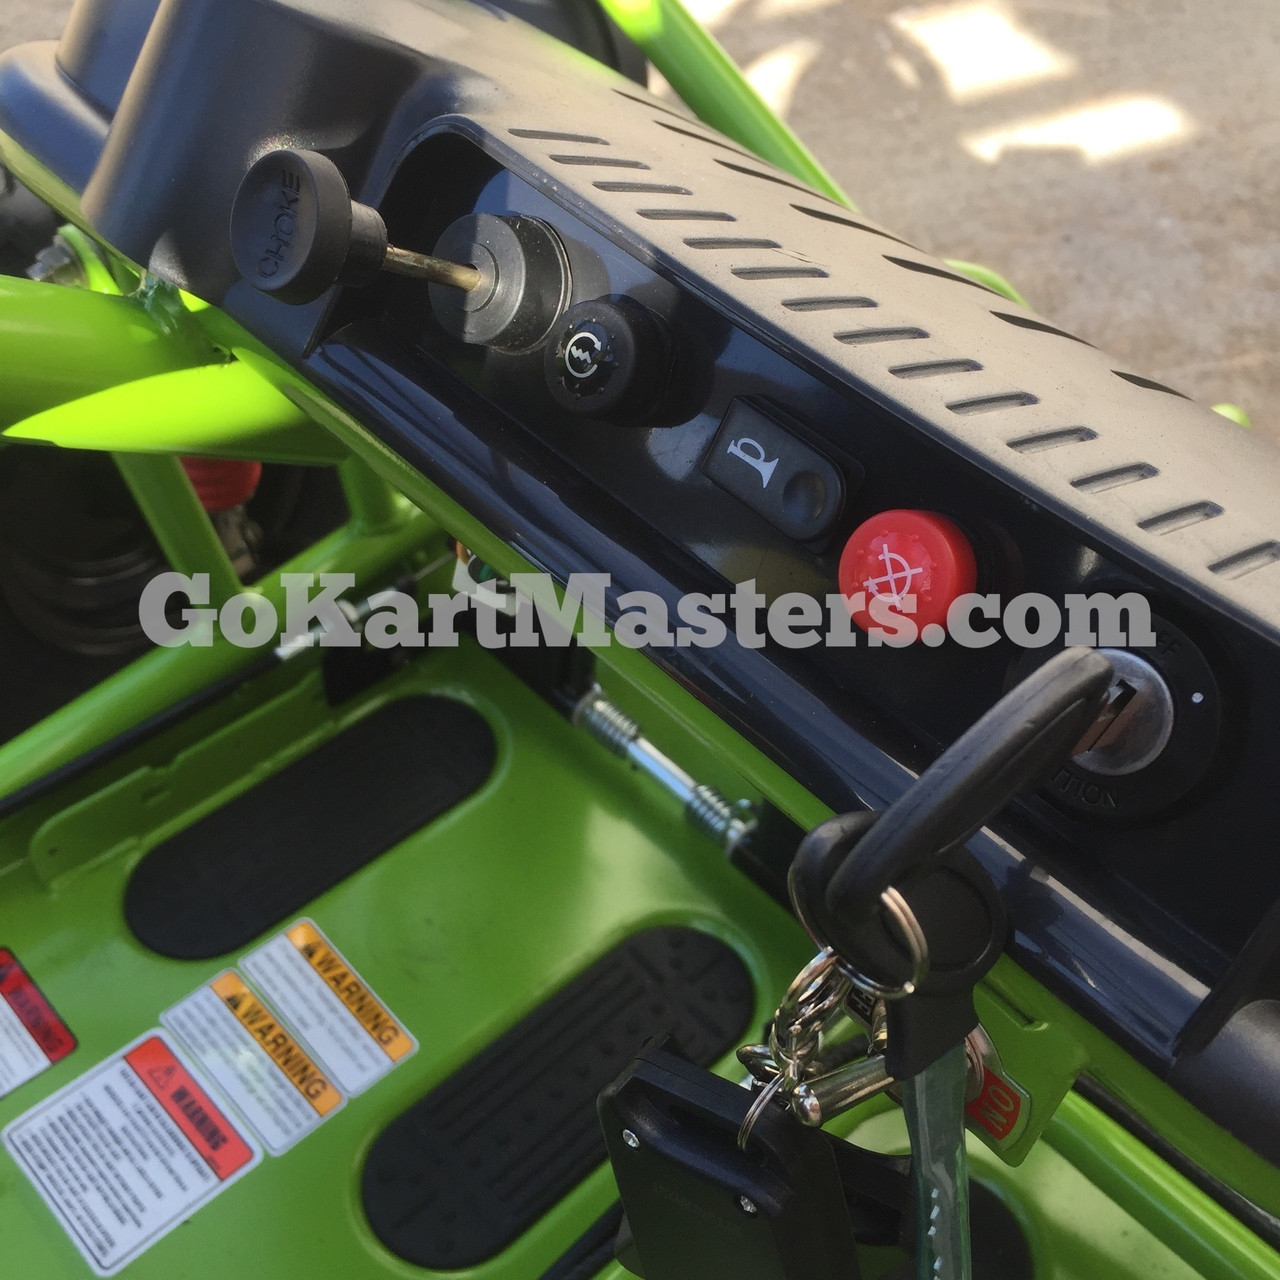 TrailMaster Mini XRX/R+ Go Kart - Dash